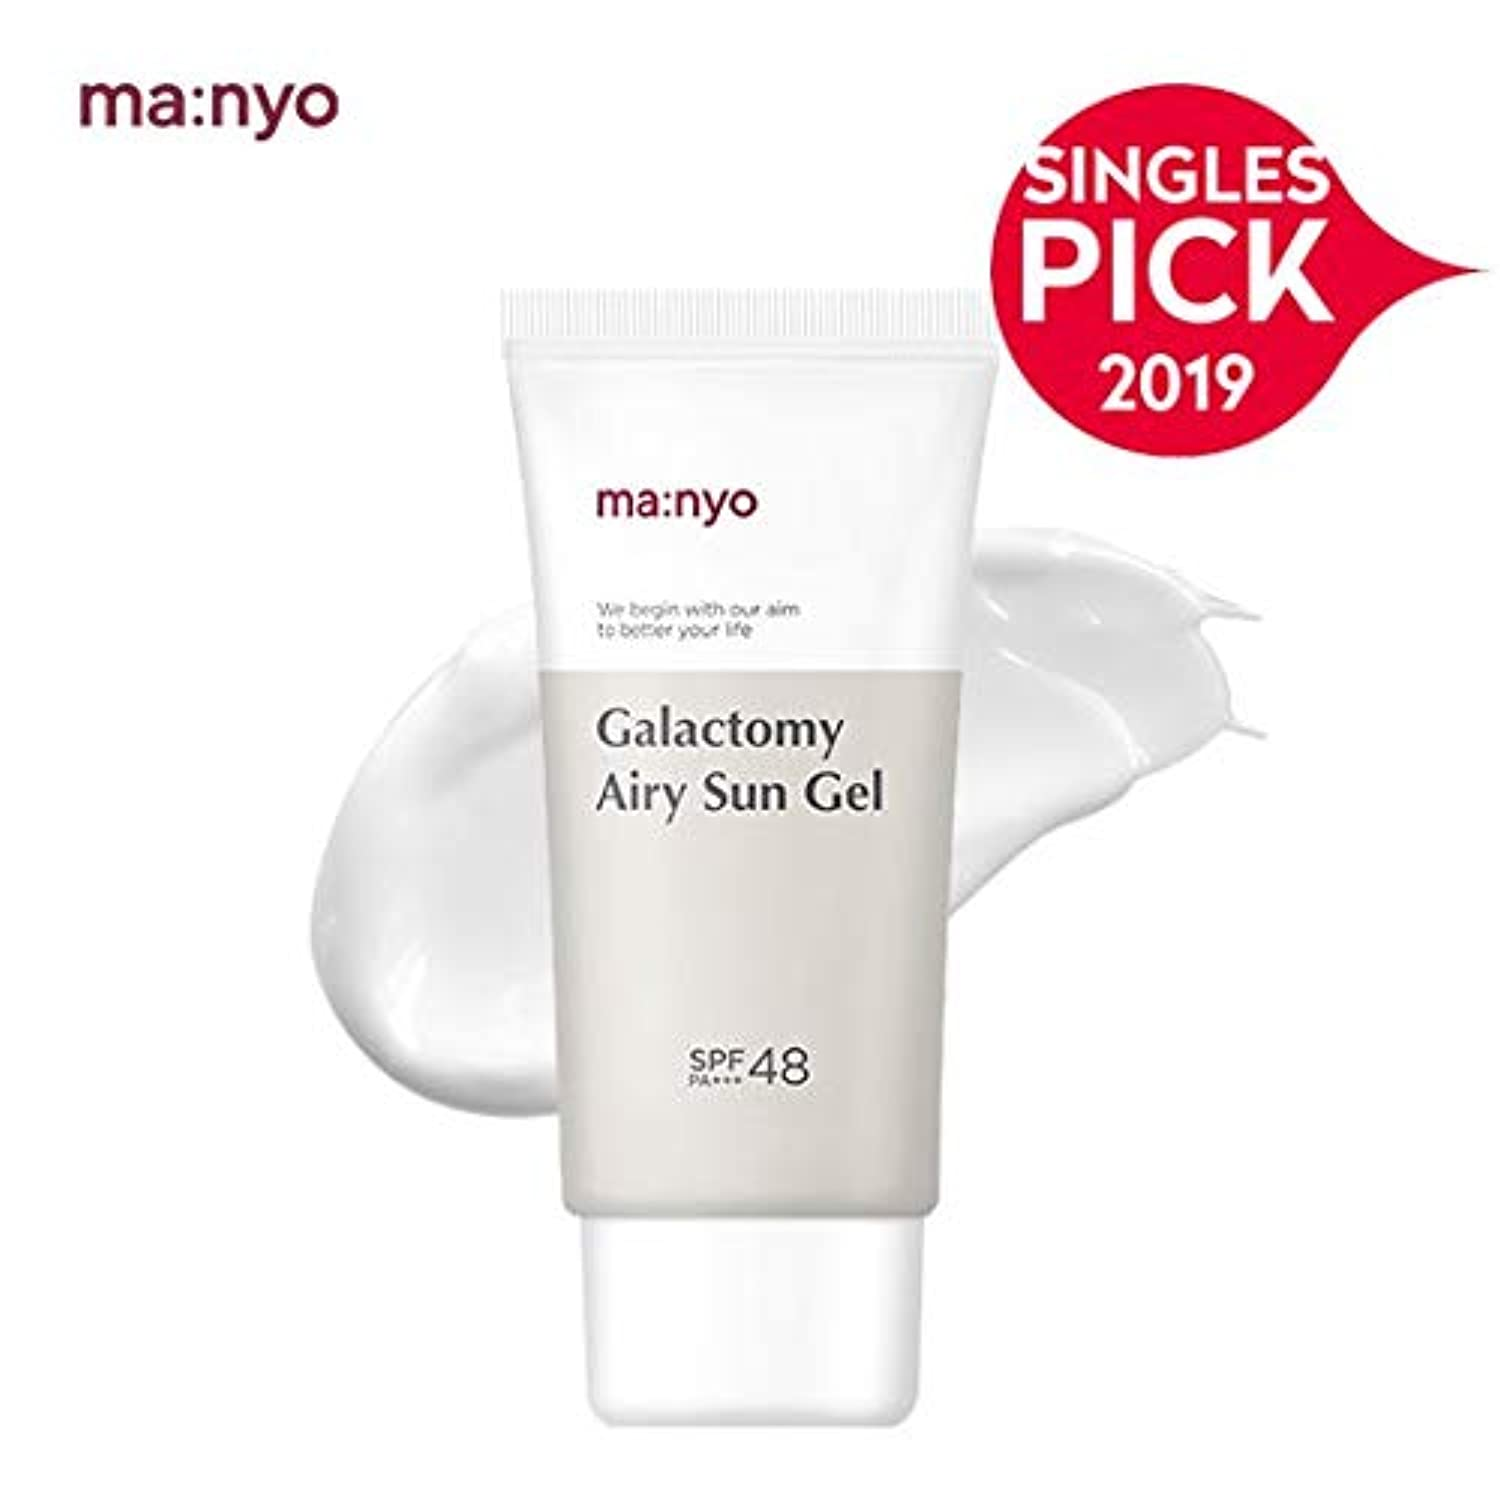 魔女工場 Manyo Factory ガラクトミーサンジェル 50g, SPF48 PA+++ galactomyces airy sun gel